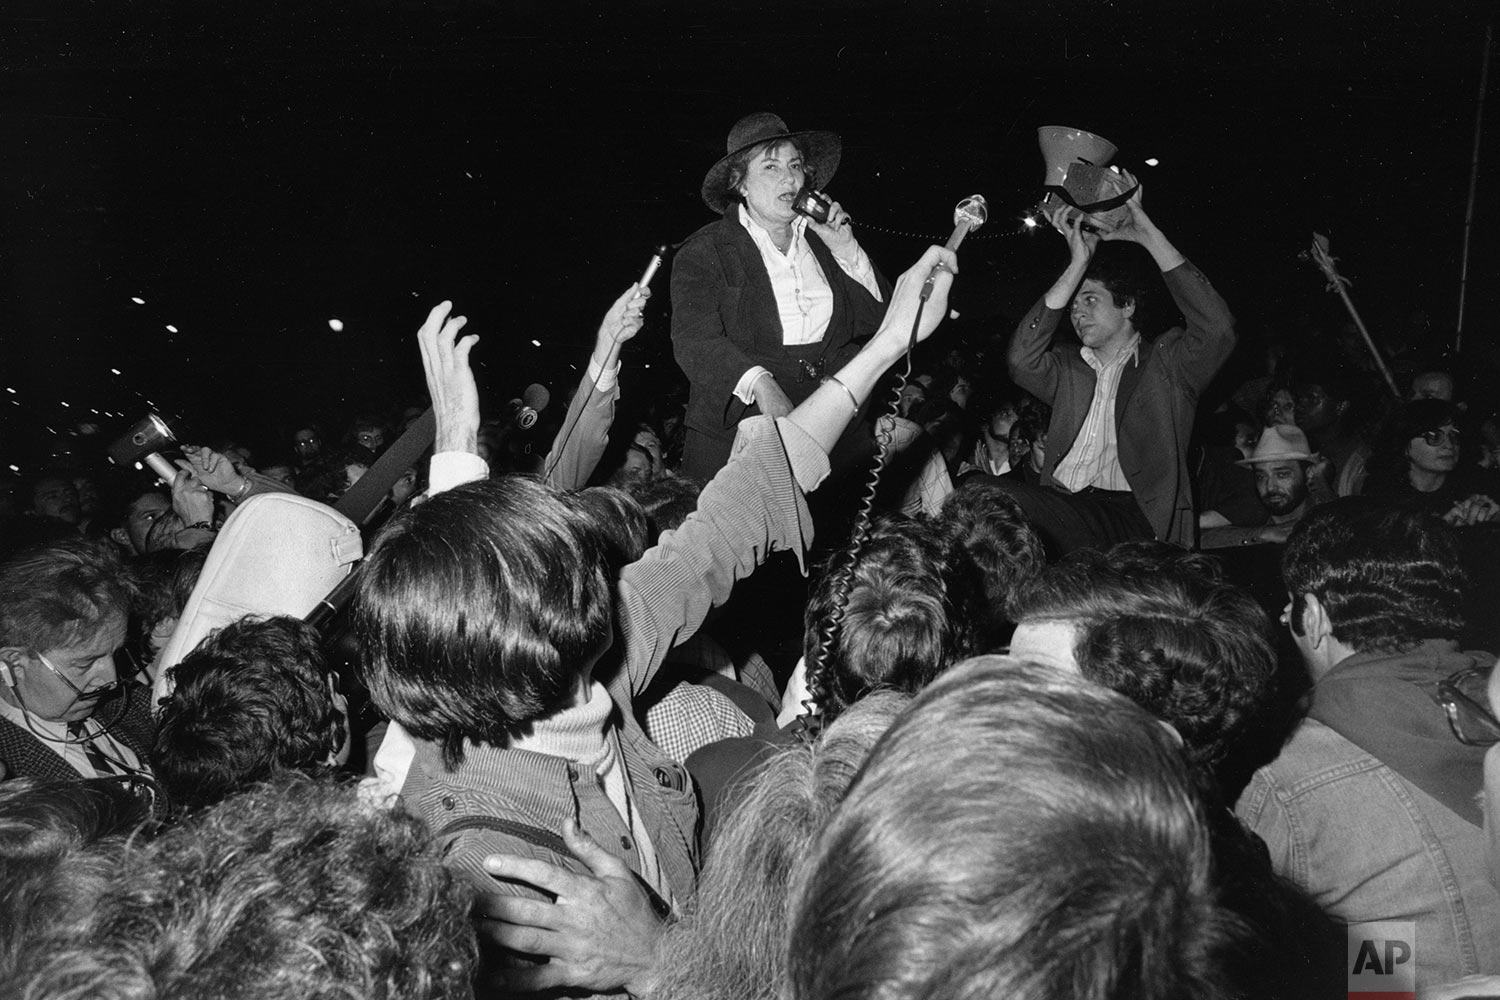 In this Wednesday, June 8, 1977 file photo, former U.S. Rep. Bella Abzug addresses a rally in New York as thousands turn out to protest the repeal of a homosexual rights law in Dade County, Fla. Abzug, a candidate for mayor in New York, urged gay rights activists to undertake a public education program to gain their rights. (AP Photo/Suzanne Vlamis)